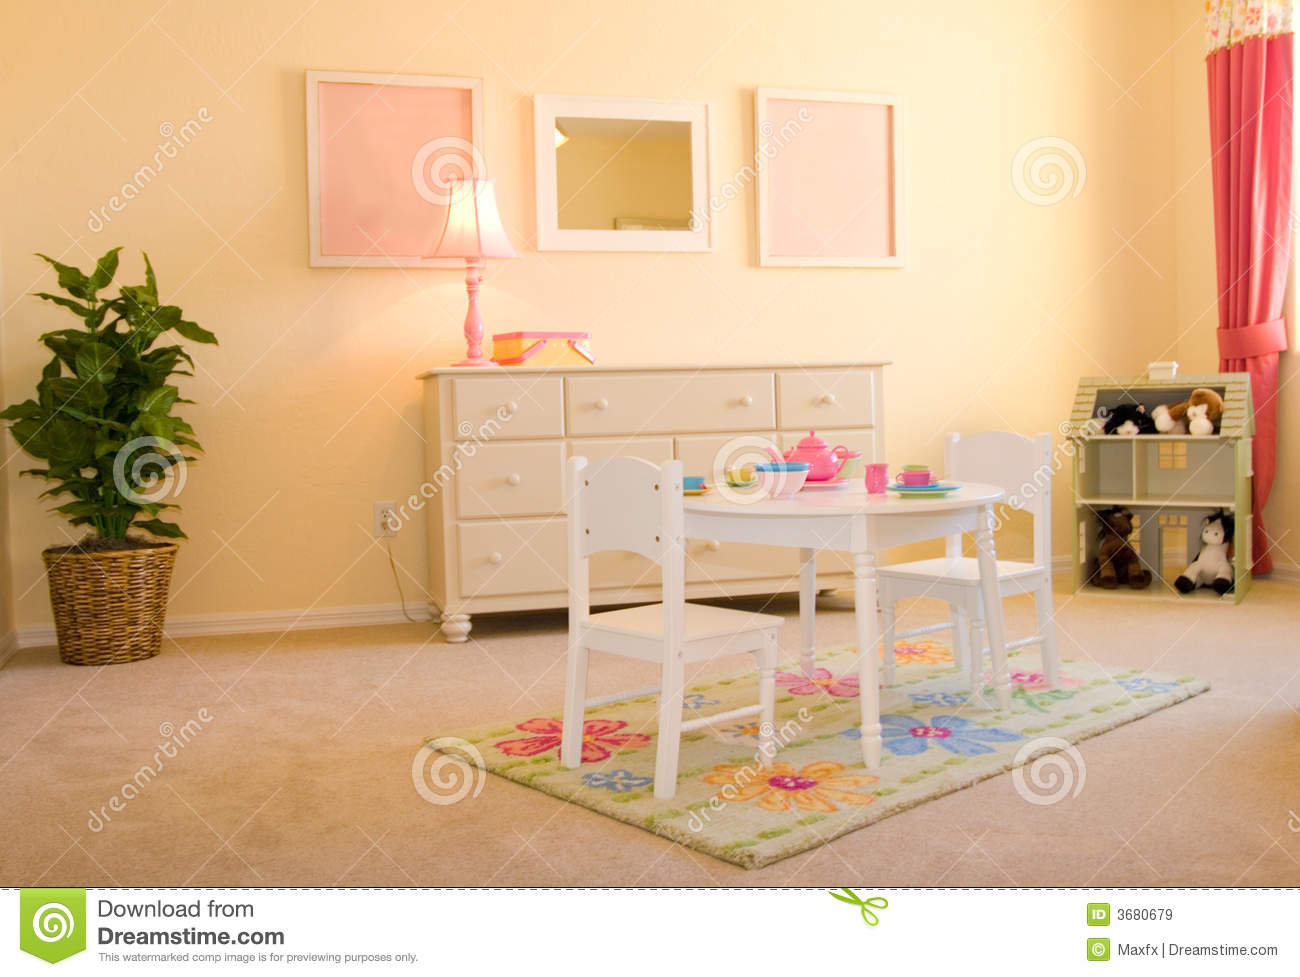 la salle de jeux des enfants image stock image 3680679. Black Bedroom Furniture Sets. Home Design Ideas